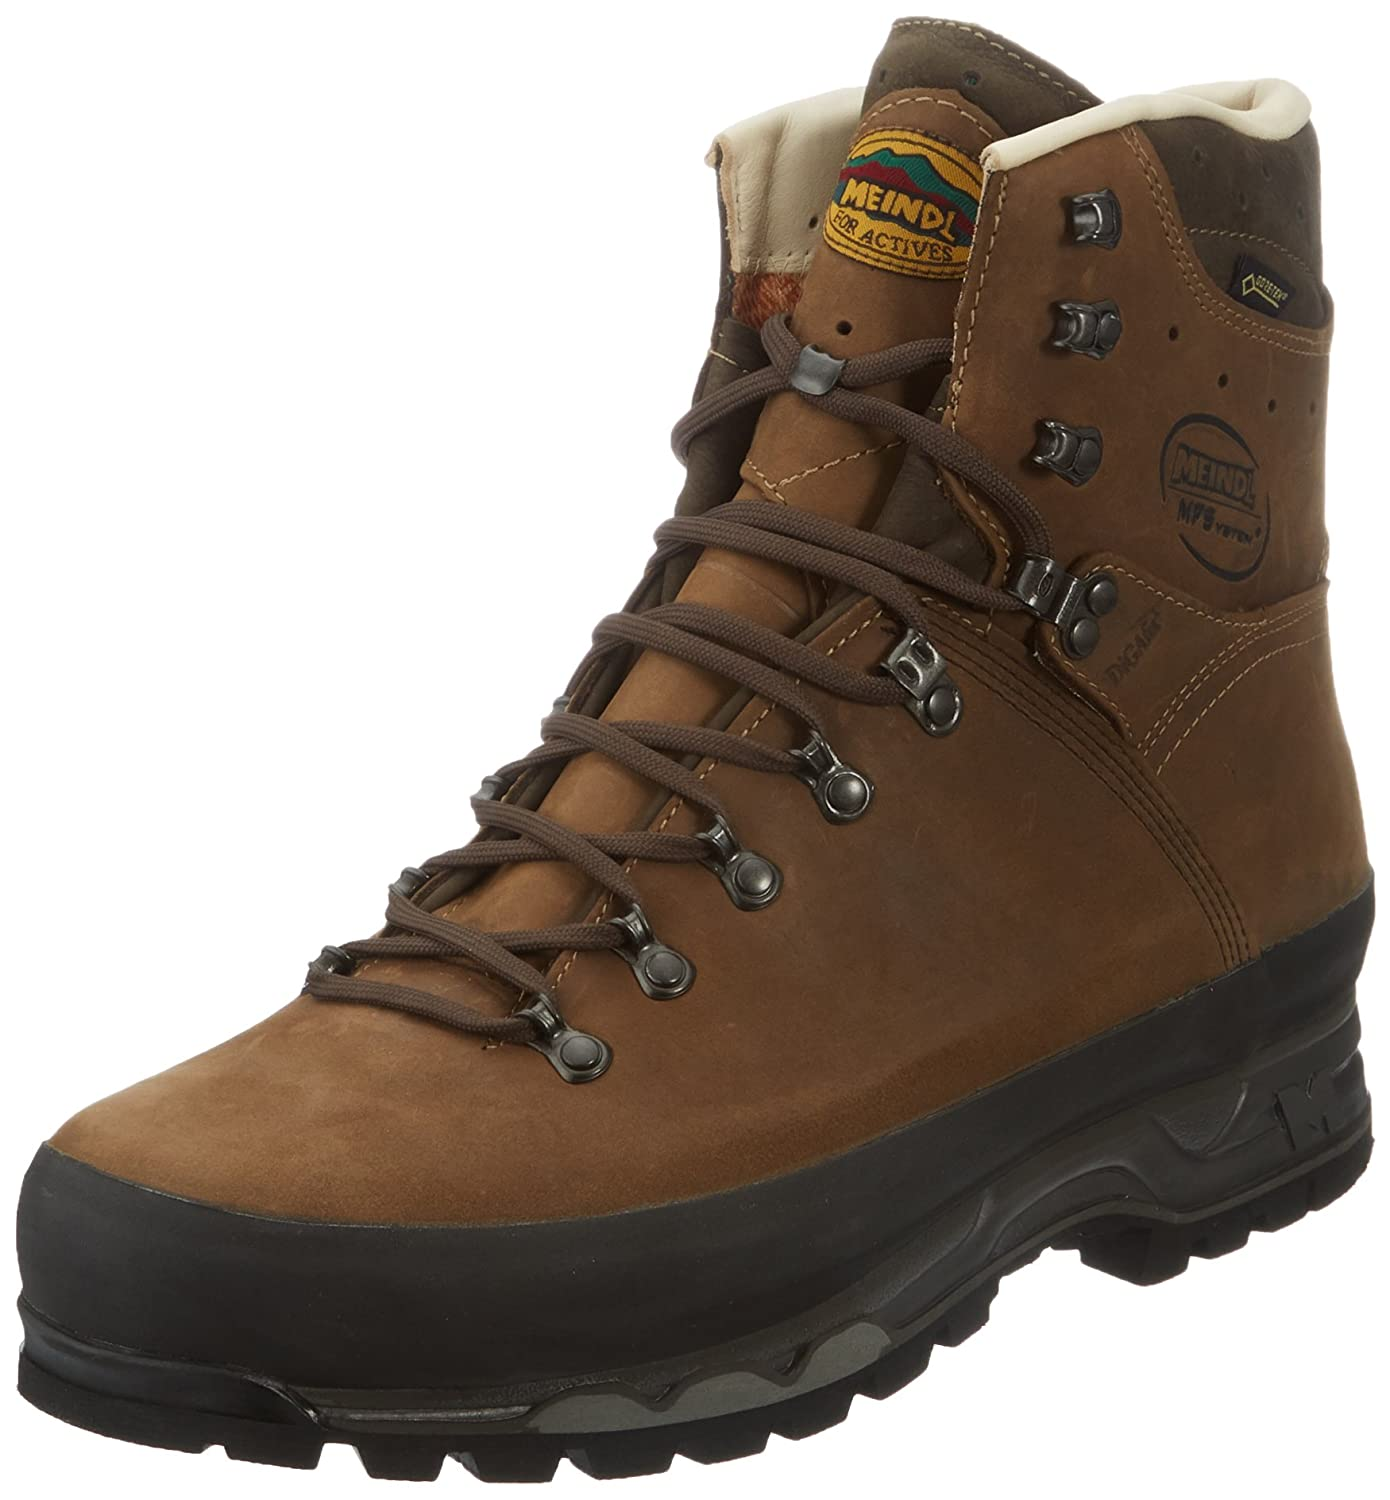 Meindl Island MFS Wide Active Shoes Brown